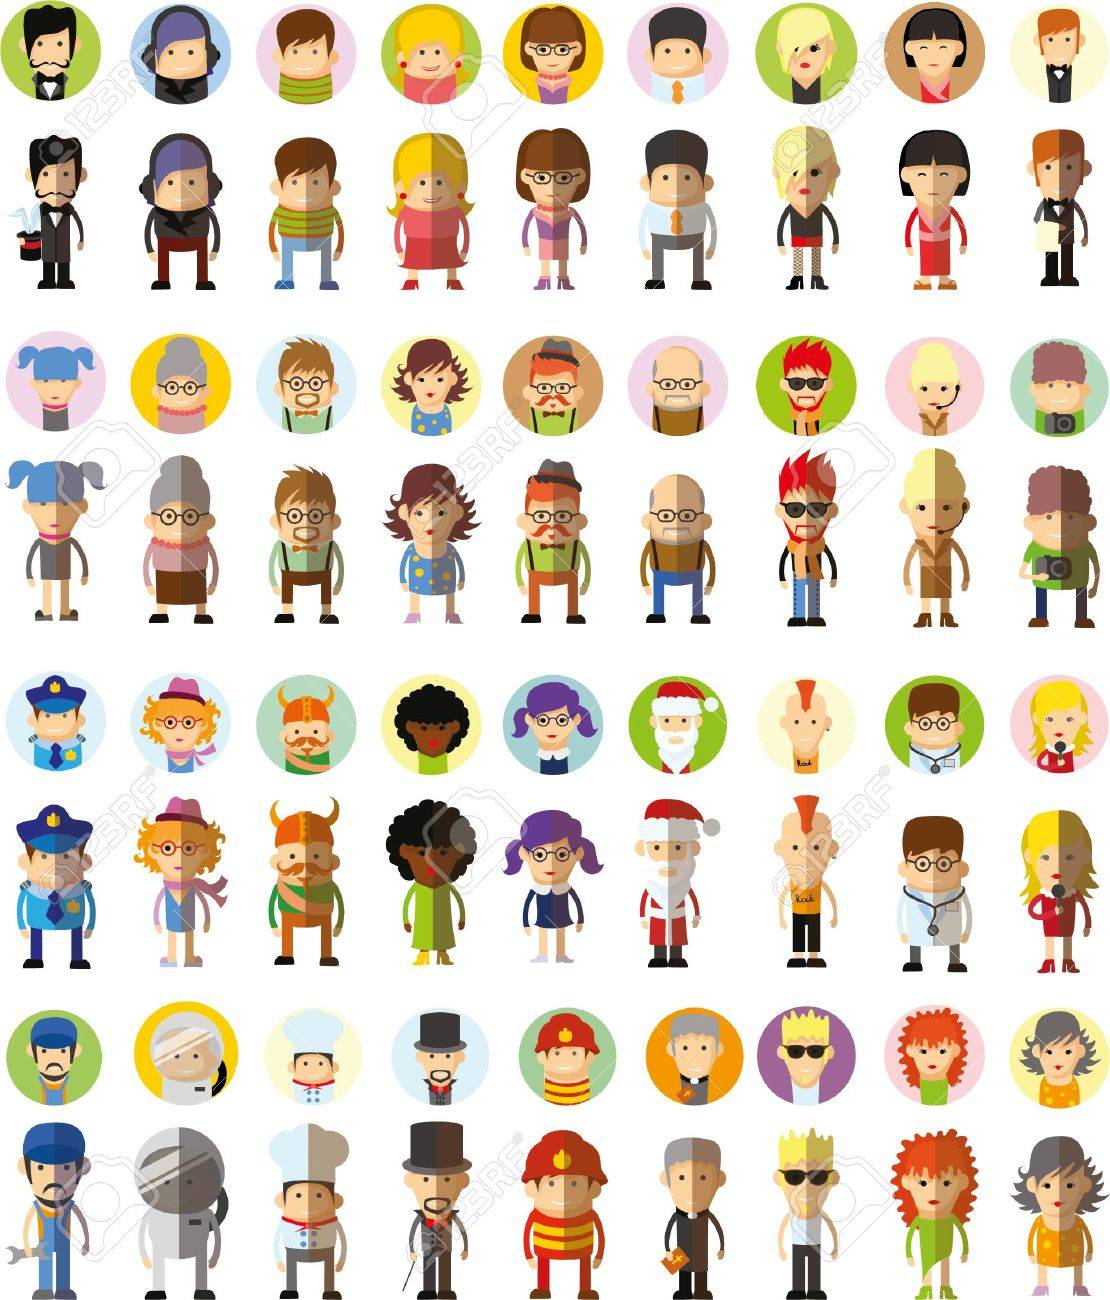 Set of cute character avatar icons in flat design - 40004922